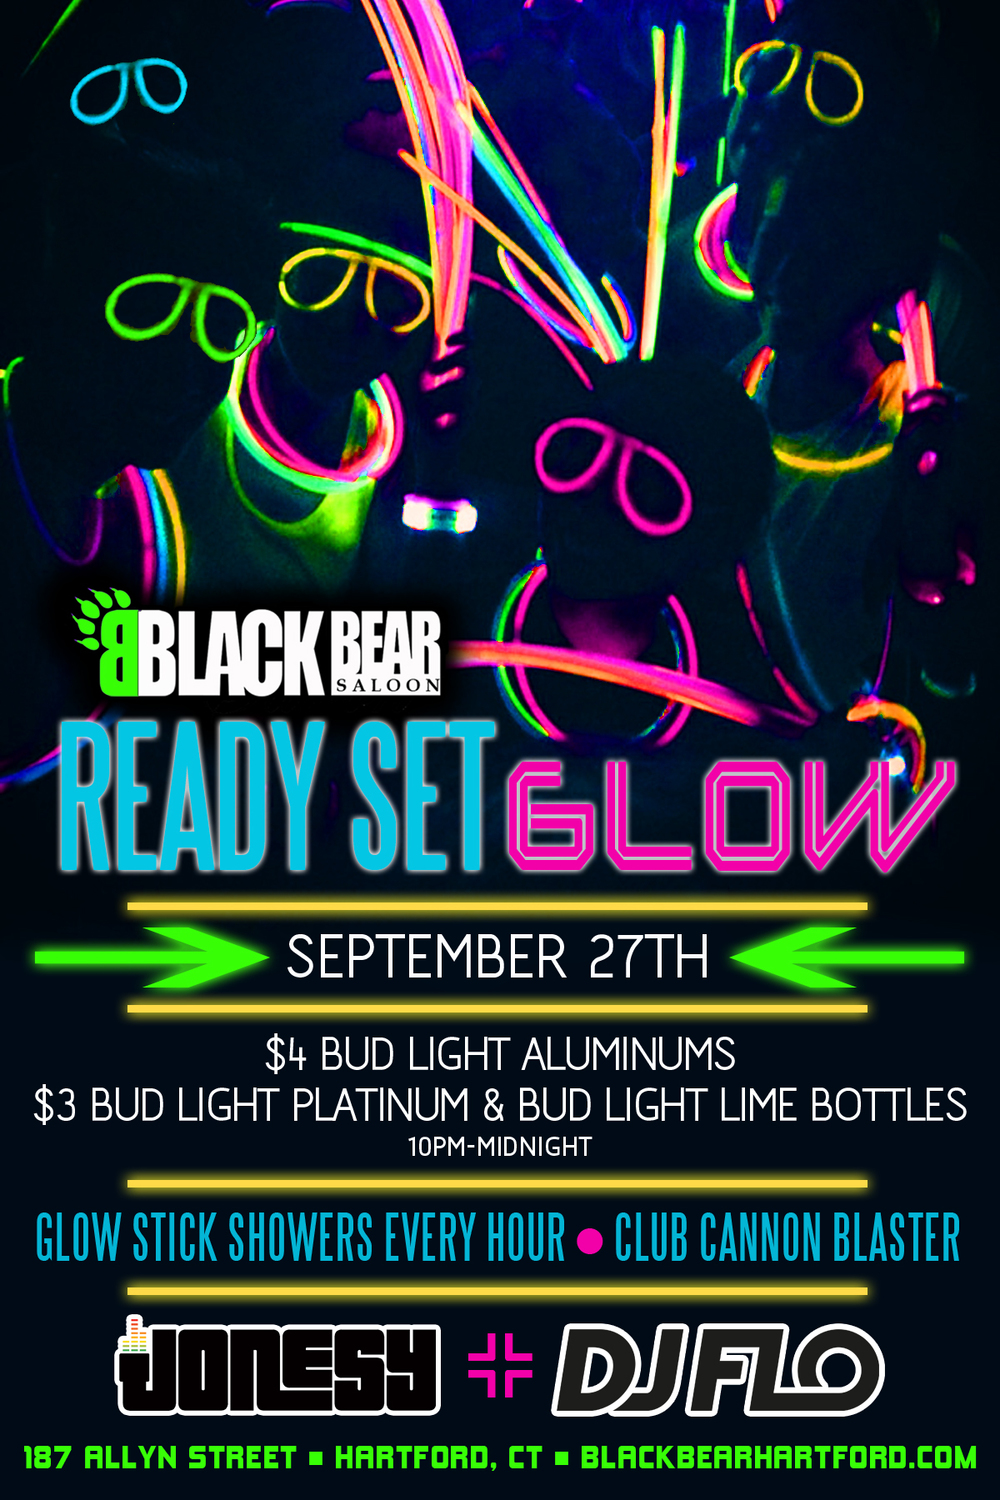 Join me + FLO & Jamesy, Saturday, September 27th in the Capitol city of Hartford CT for the highly anticipated Ready Set Glow Party at Black Bear Saloon. $4 Bud Light Aluminum Bottles, $3 Bud Light Platinum & Bud Light Lime Bottles 10PM - Midnight.  Glow Stick Showers Every Hour + The Club Cannon Blaster.